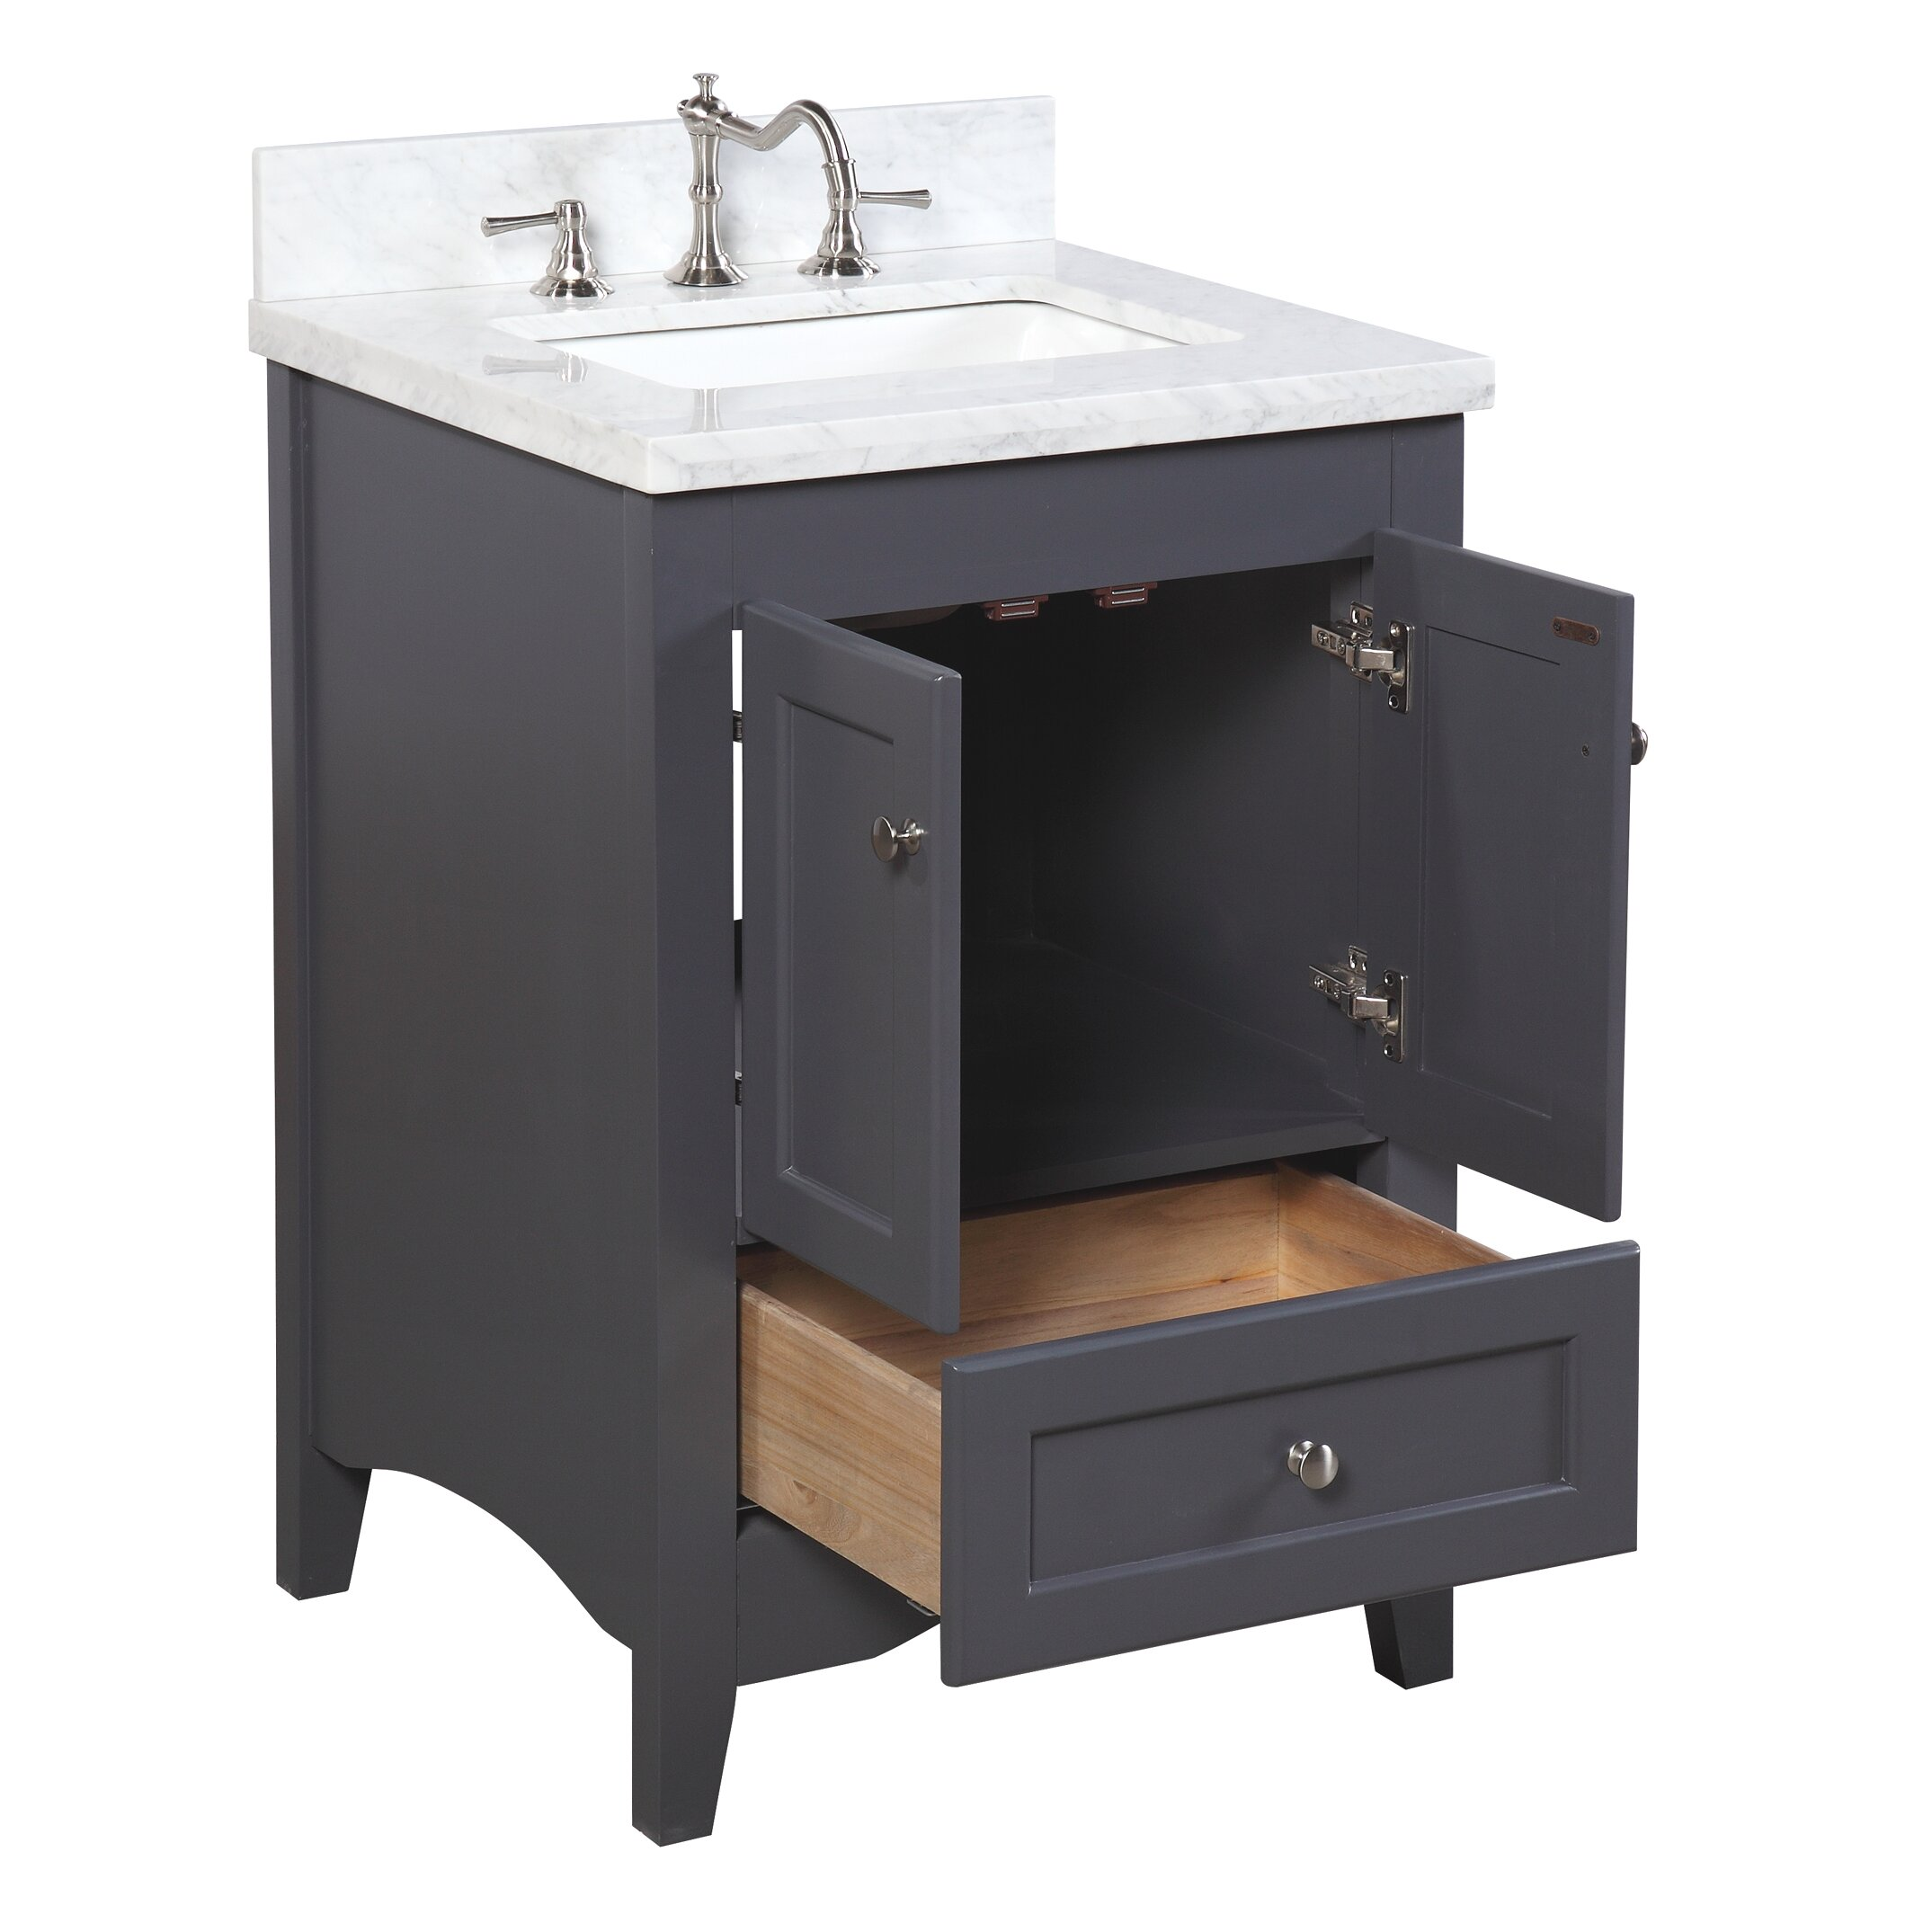 Kbc Abbey 24 Single Bathroom Vanity Set Reviews Wayfair